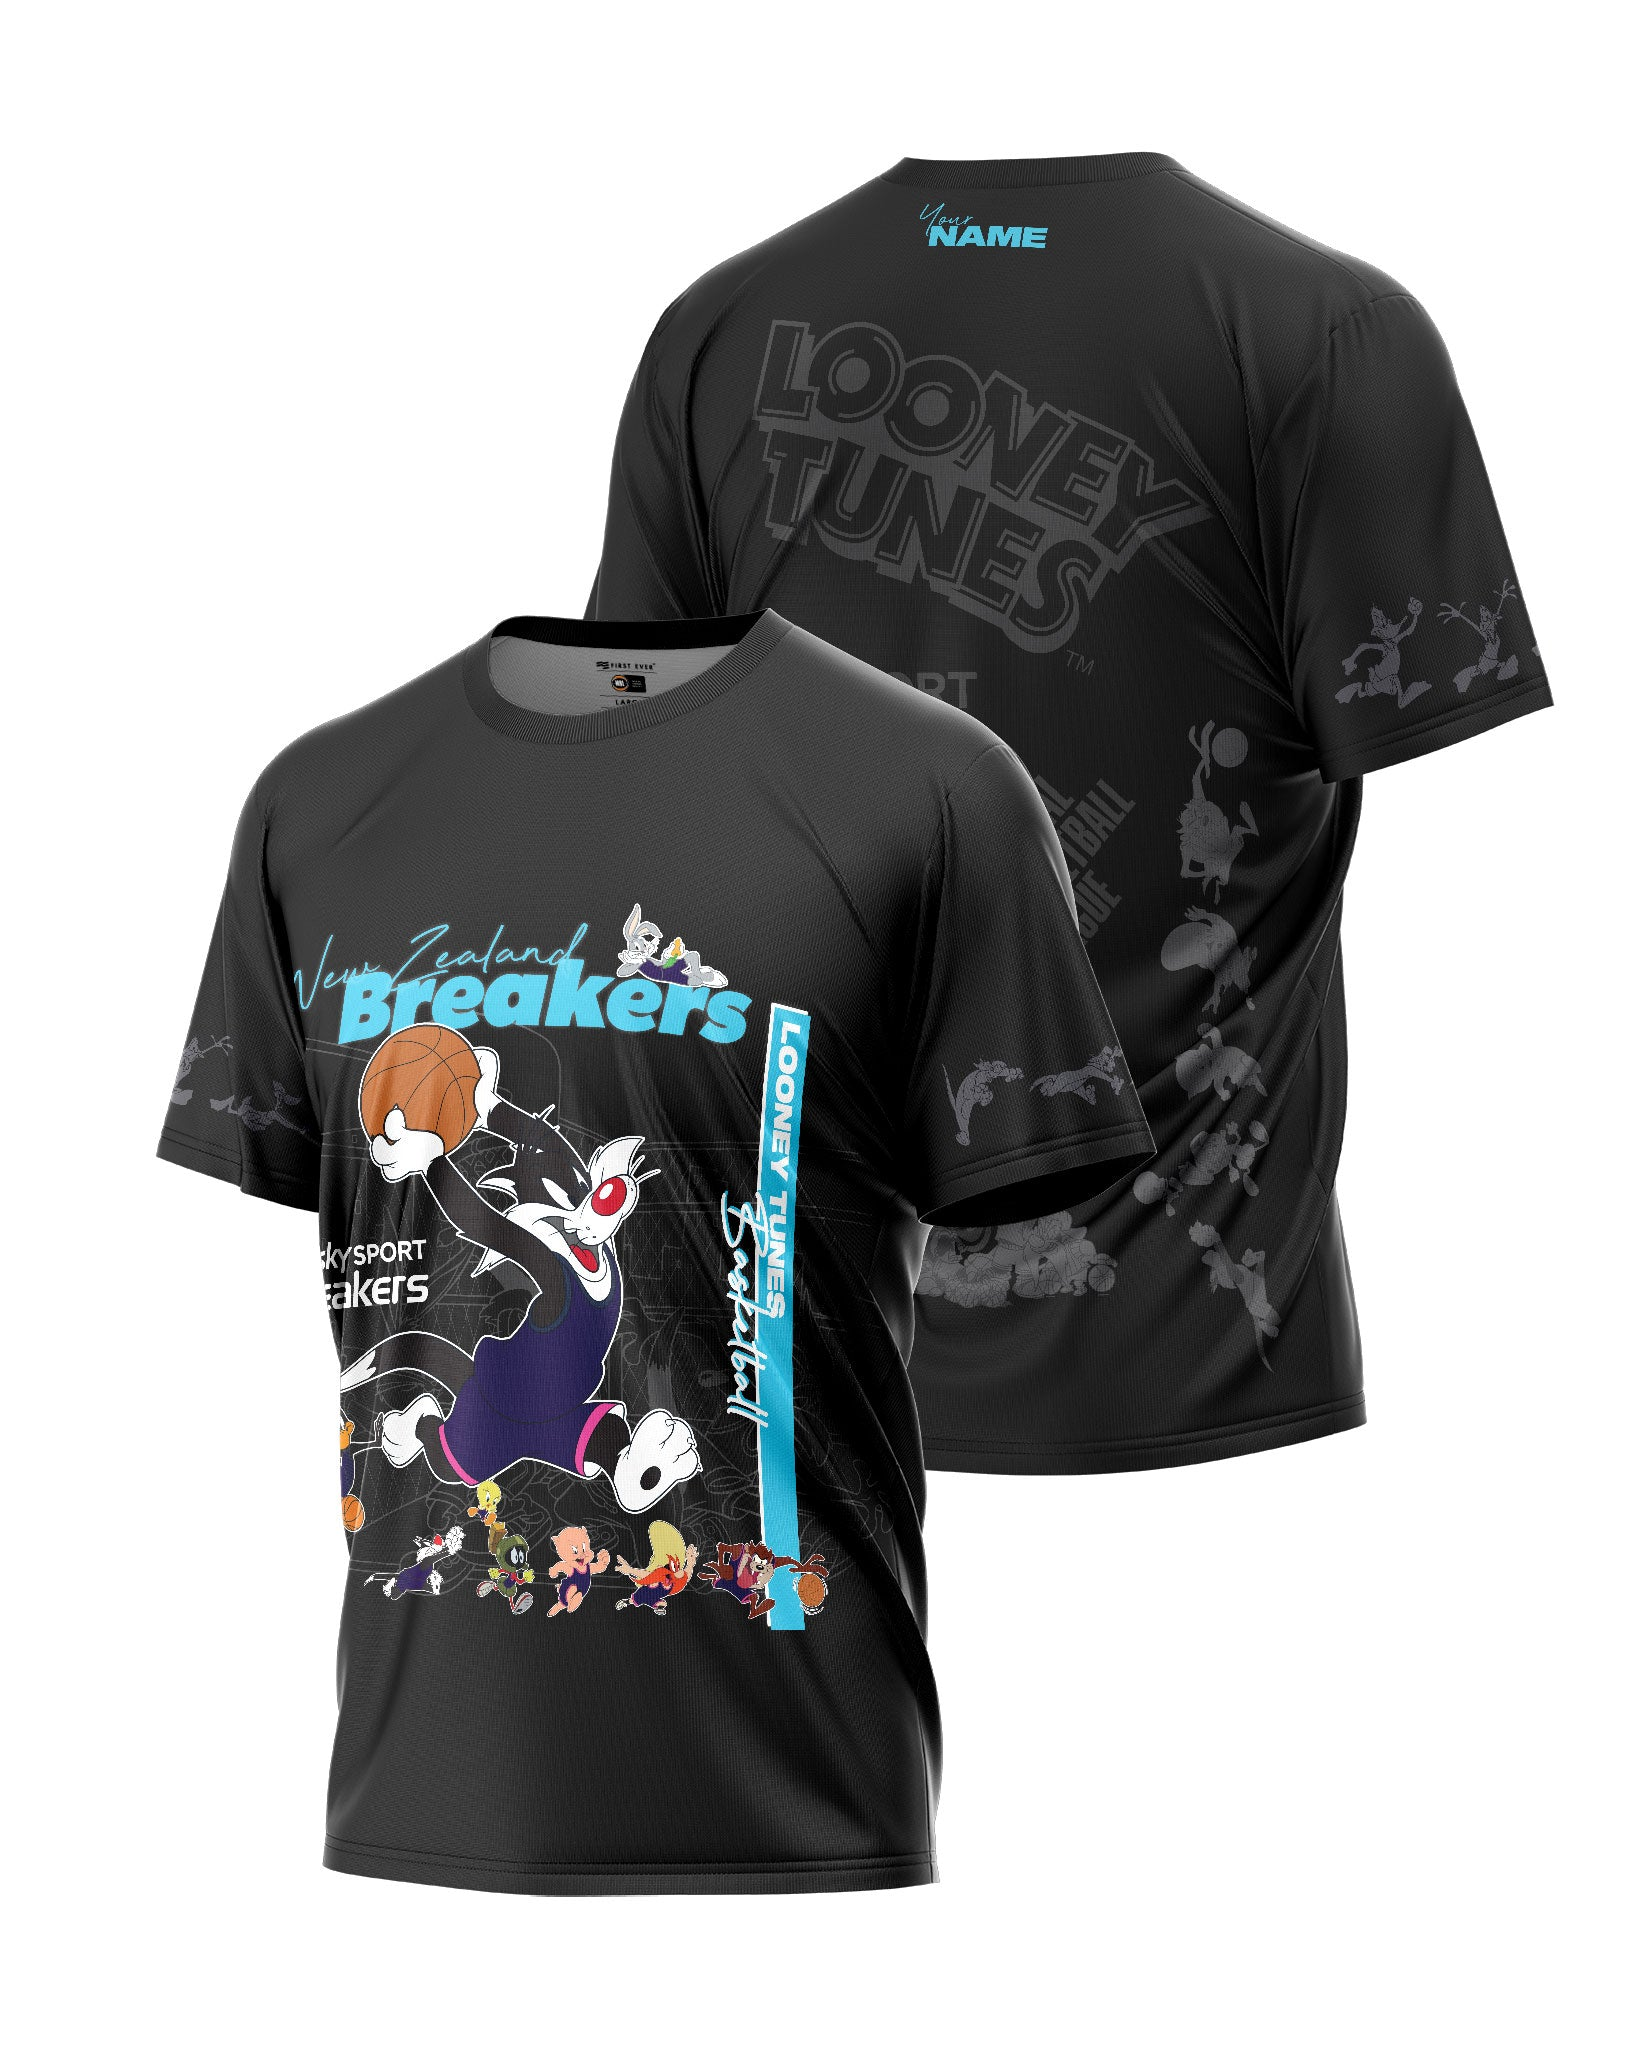 New Zealand Breakers 20/21 Looney Tunes Mono Tee - Personalised